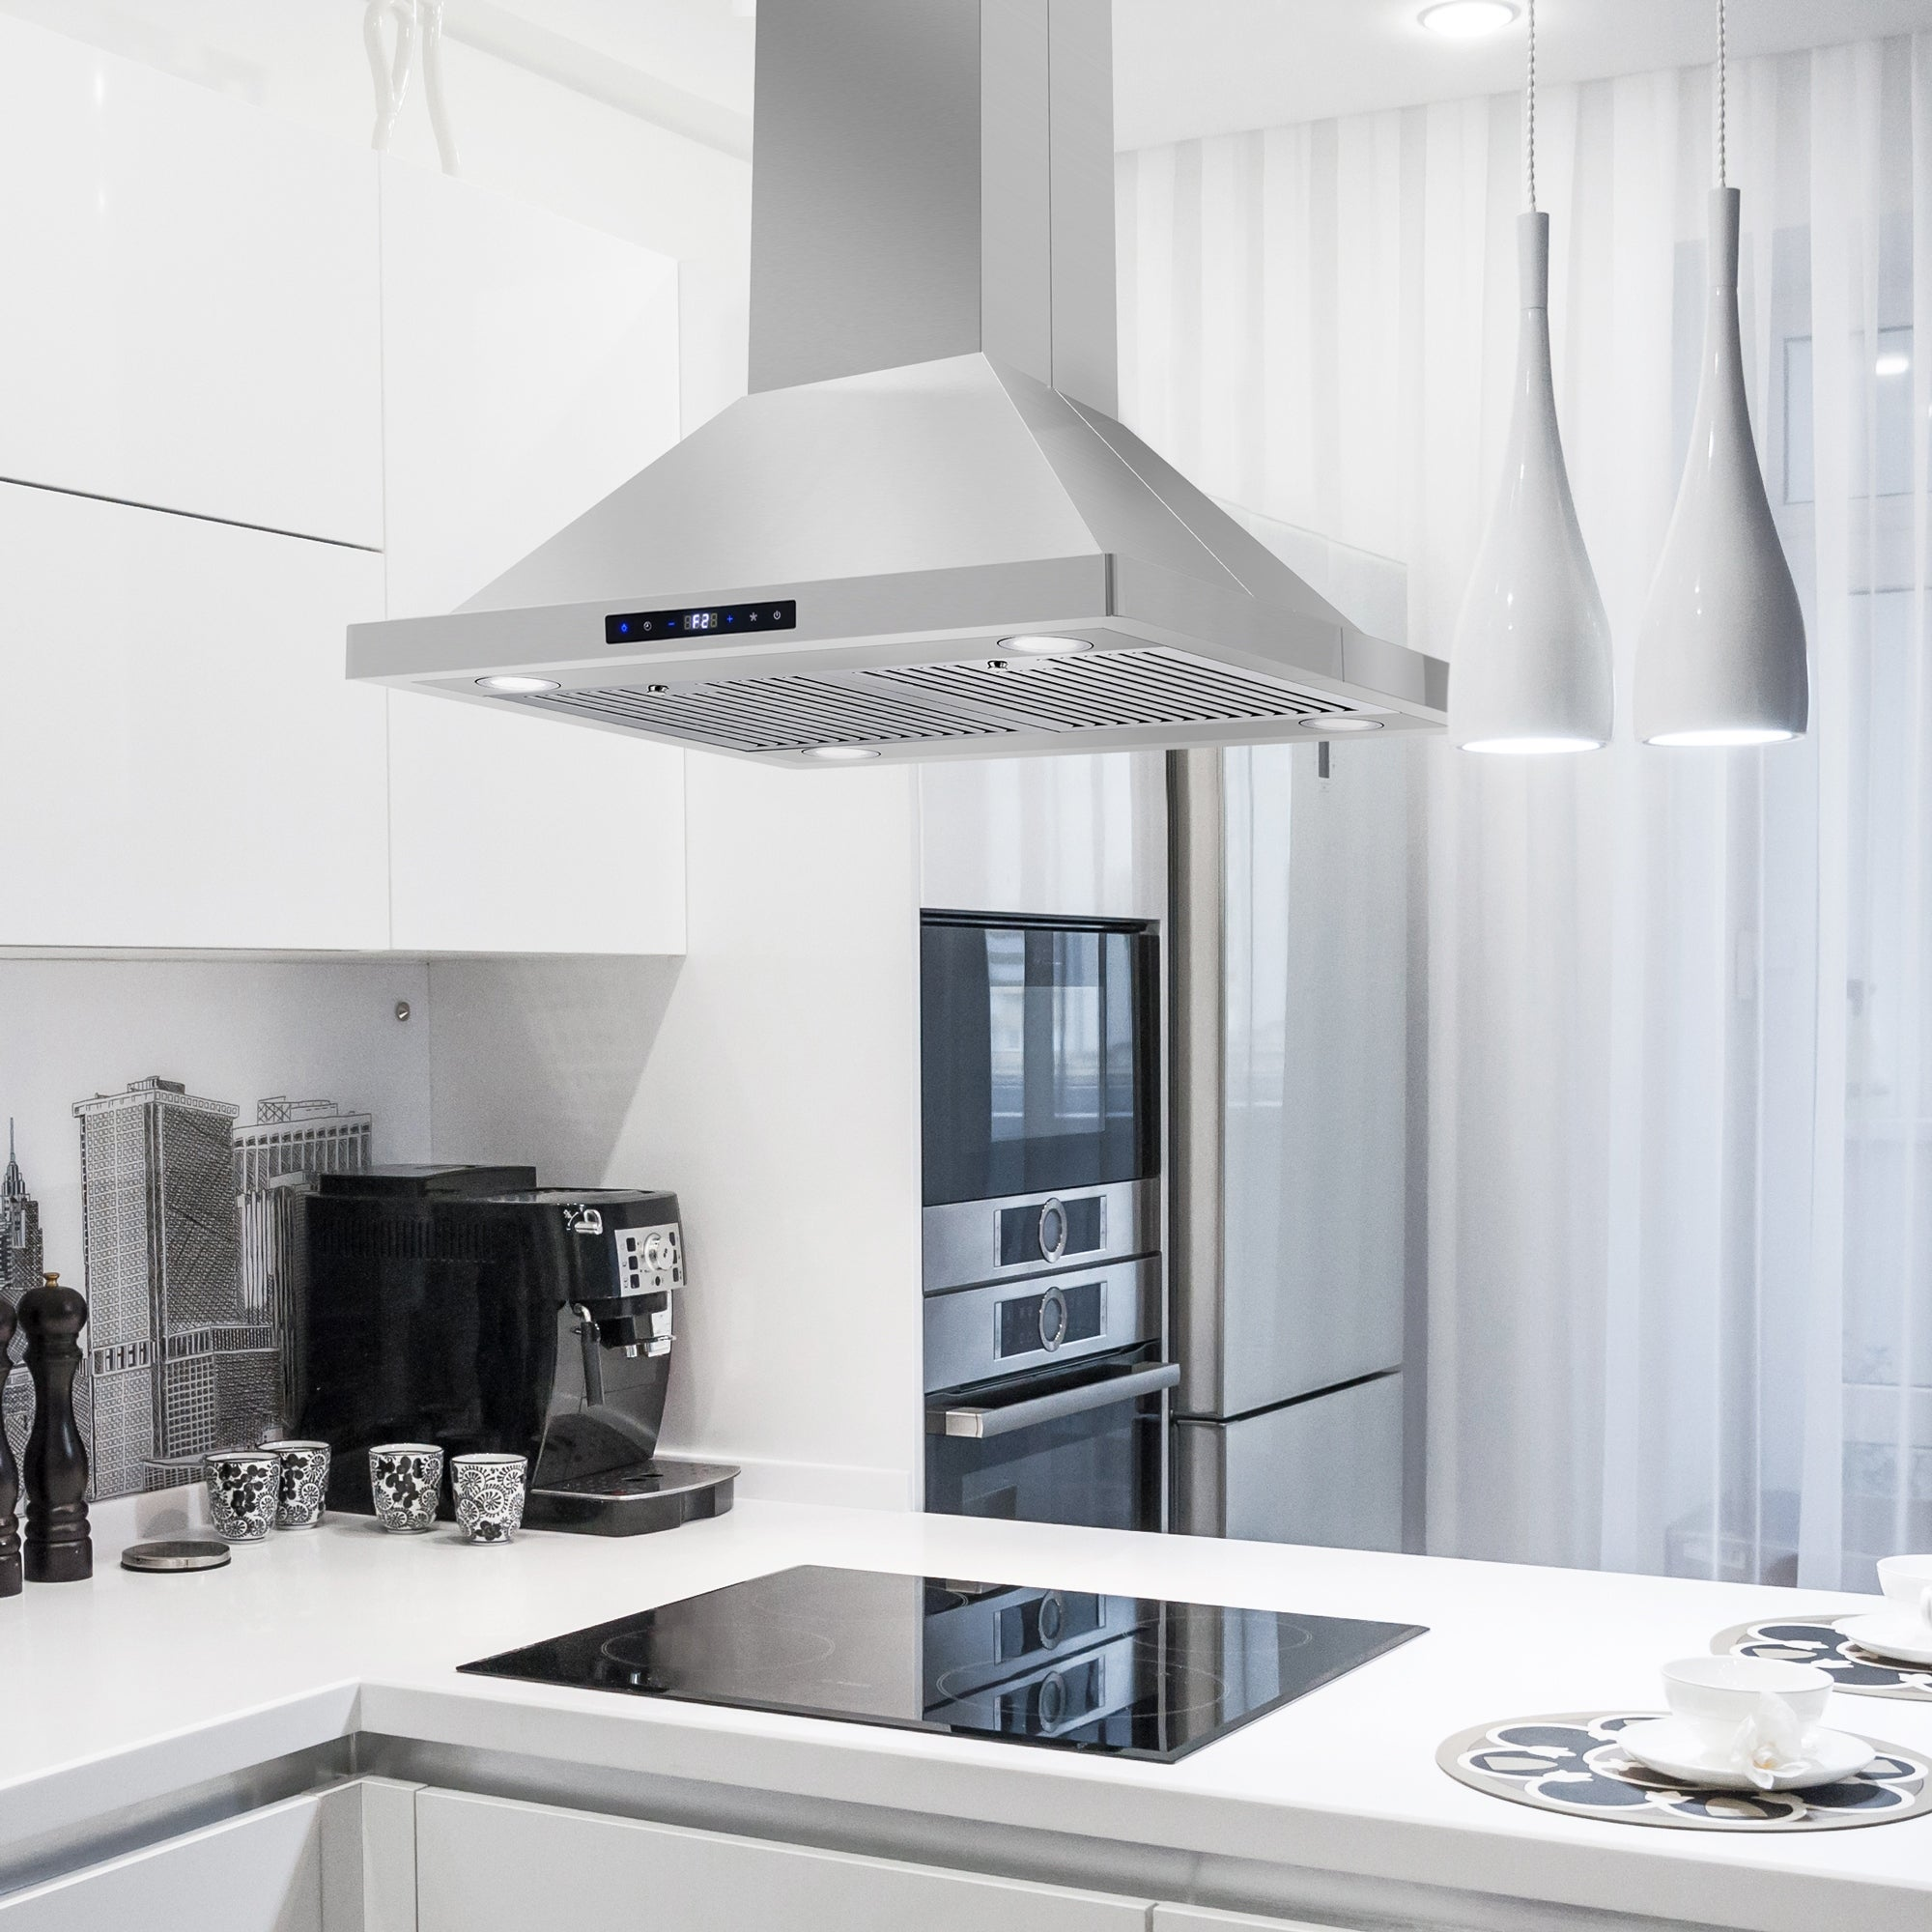 Picture of: Shop Black Friday Deals On 30 In Ductless Island Mount Range Hood In Stainless Steel With Led Lighting And Permanent Filters Overstock 21678611